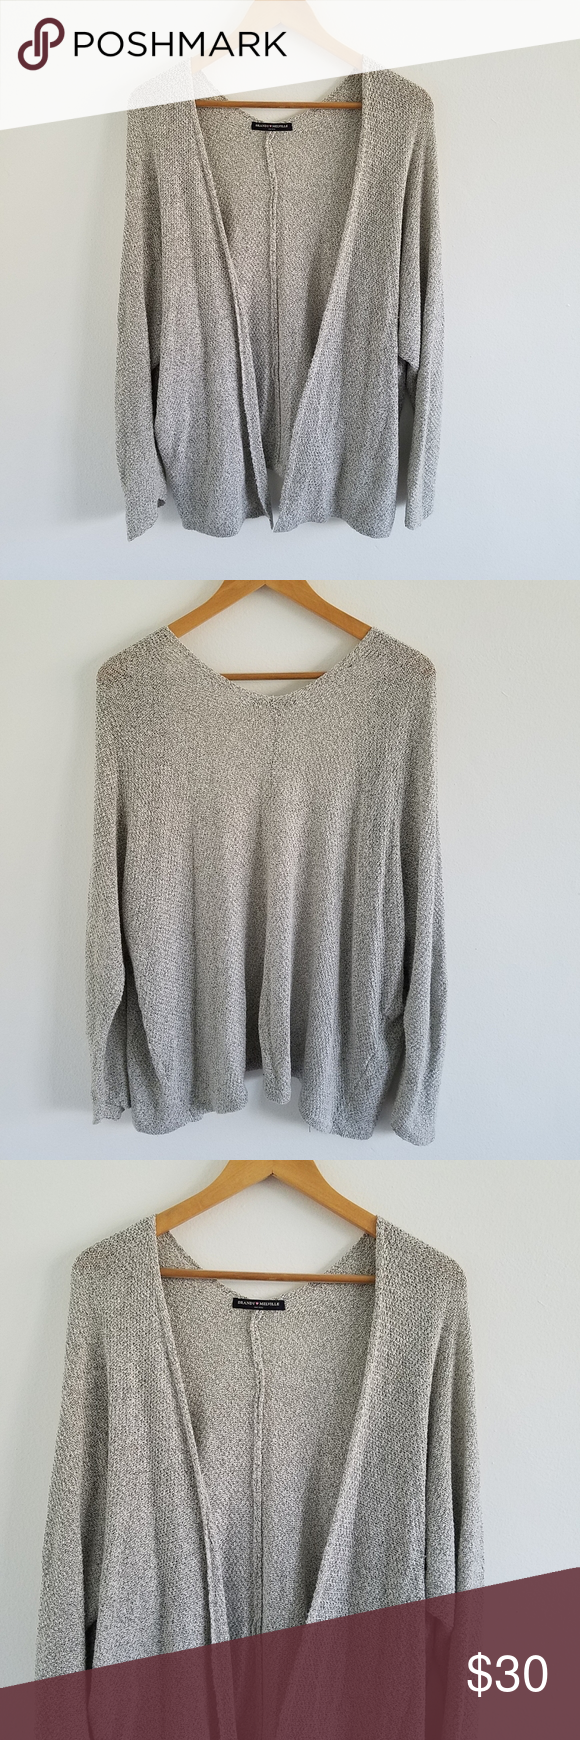 Brandy Melville Open Front Oversized Sweater Sweaters Oversized Oversized Sweater Cardigan Sweaters For Women